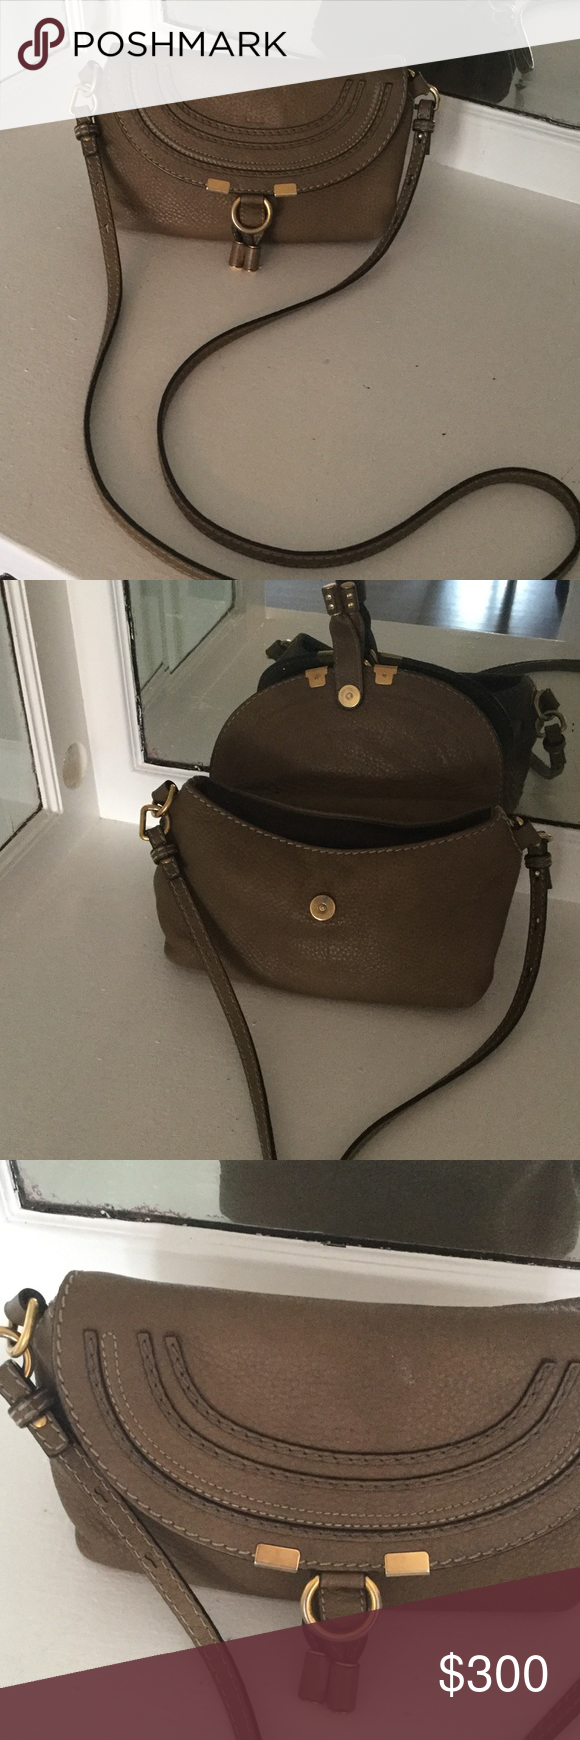 692c15e06dcb Chloe mini Marcie bag Mini Marcie Pochette. Preloved hence the great price.  I am pretty firm on the price as this is still a beautiful bag and I am  happy to ...